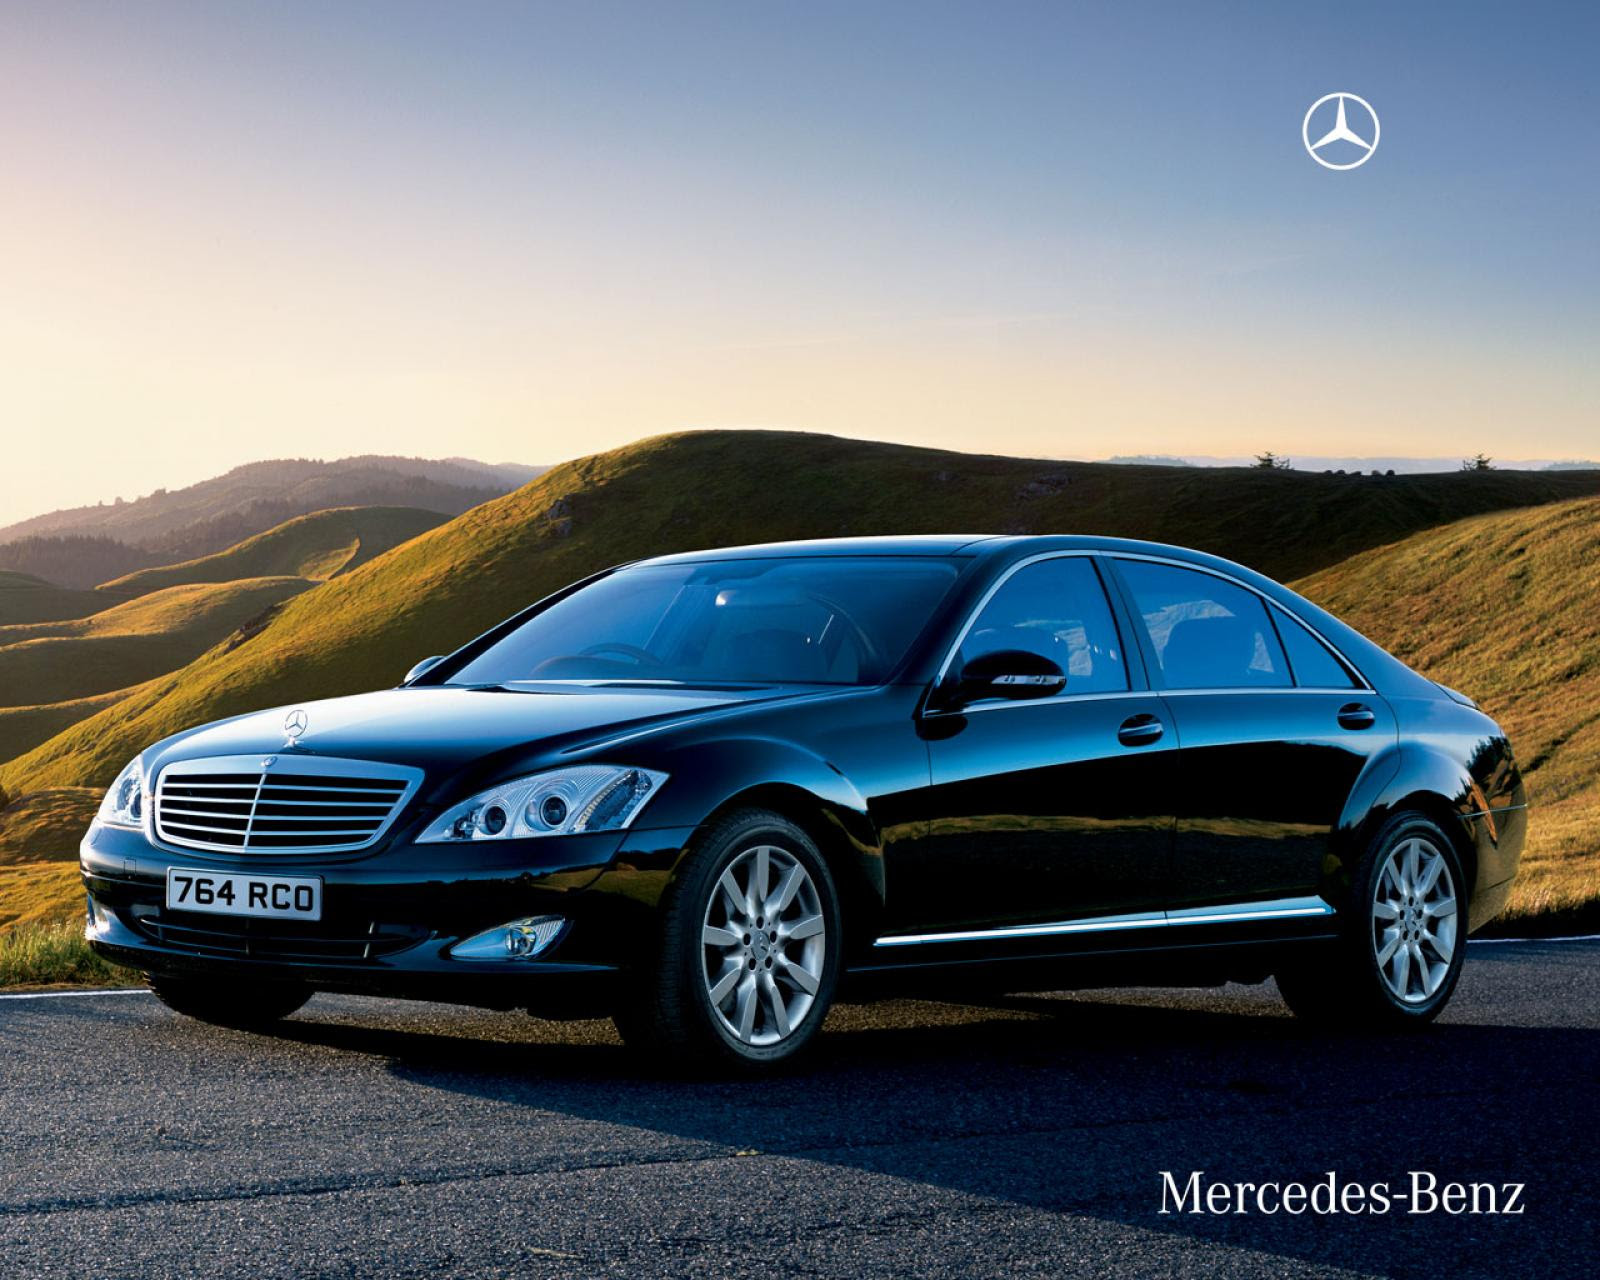 2007 Mercedes-Benz S-Class - Information and photos - Zomb ...